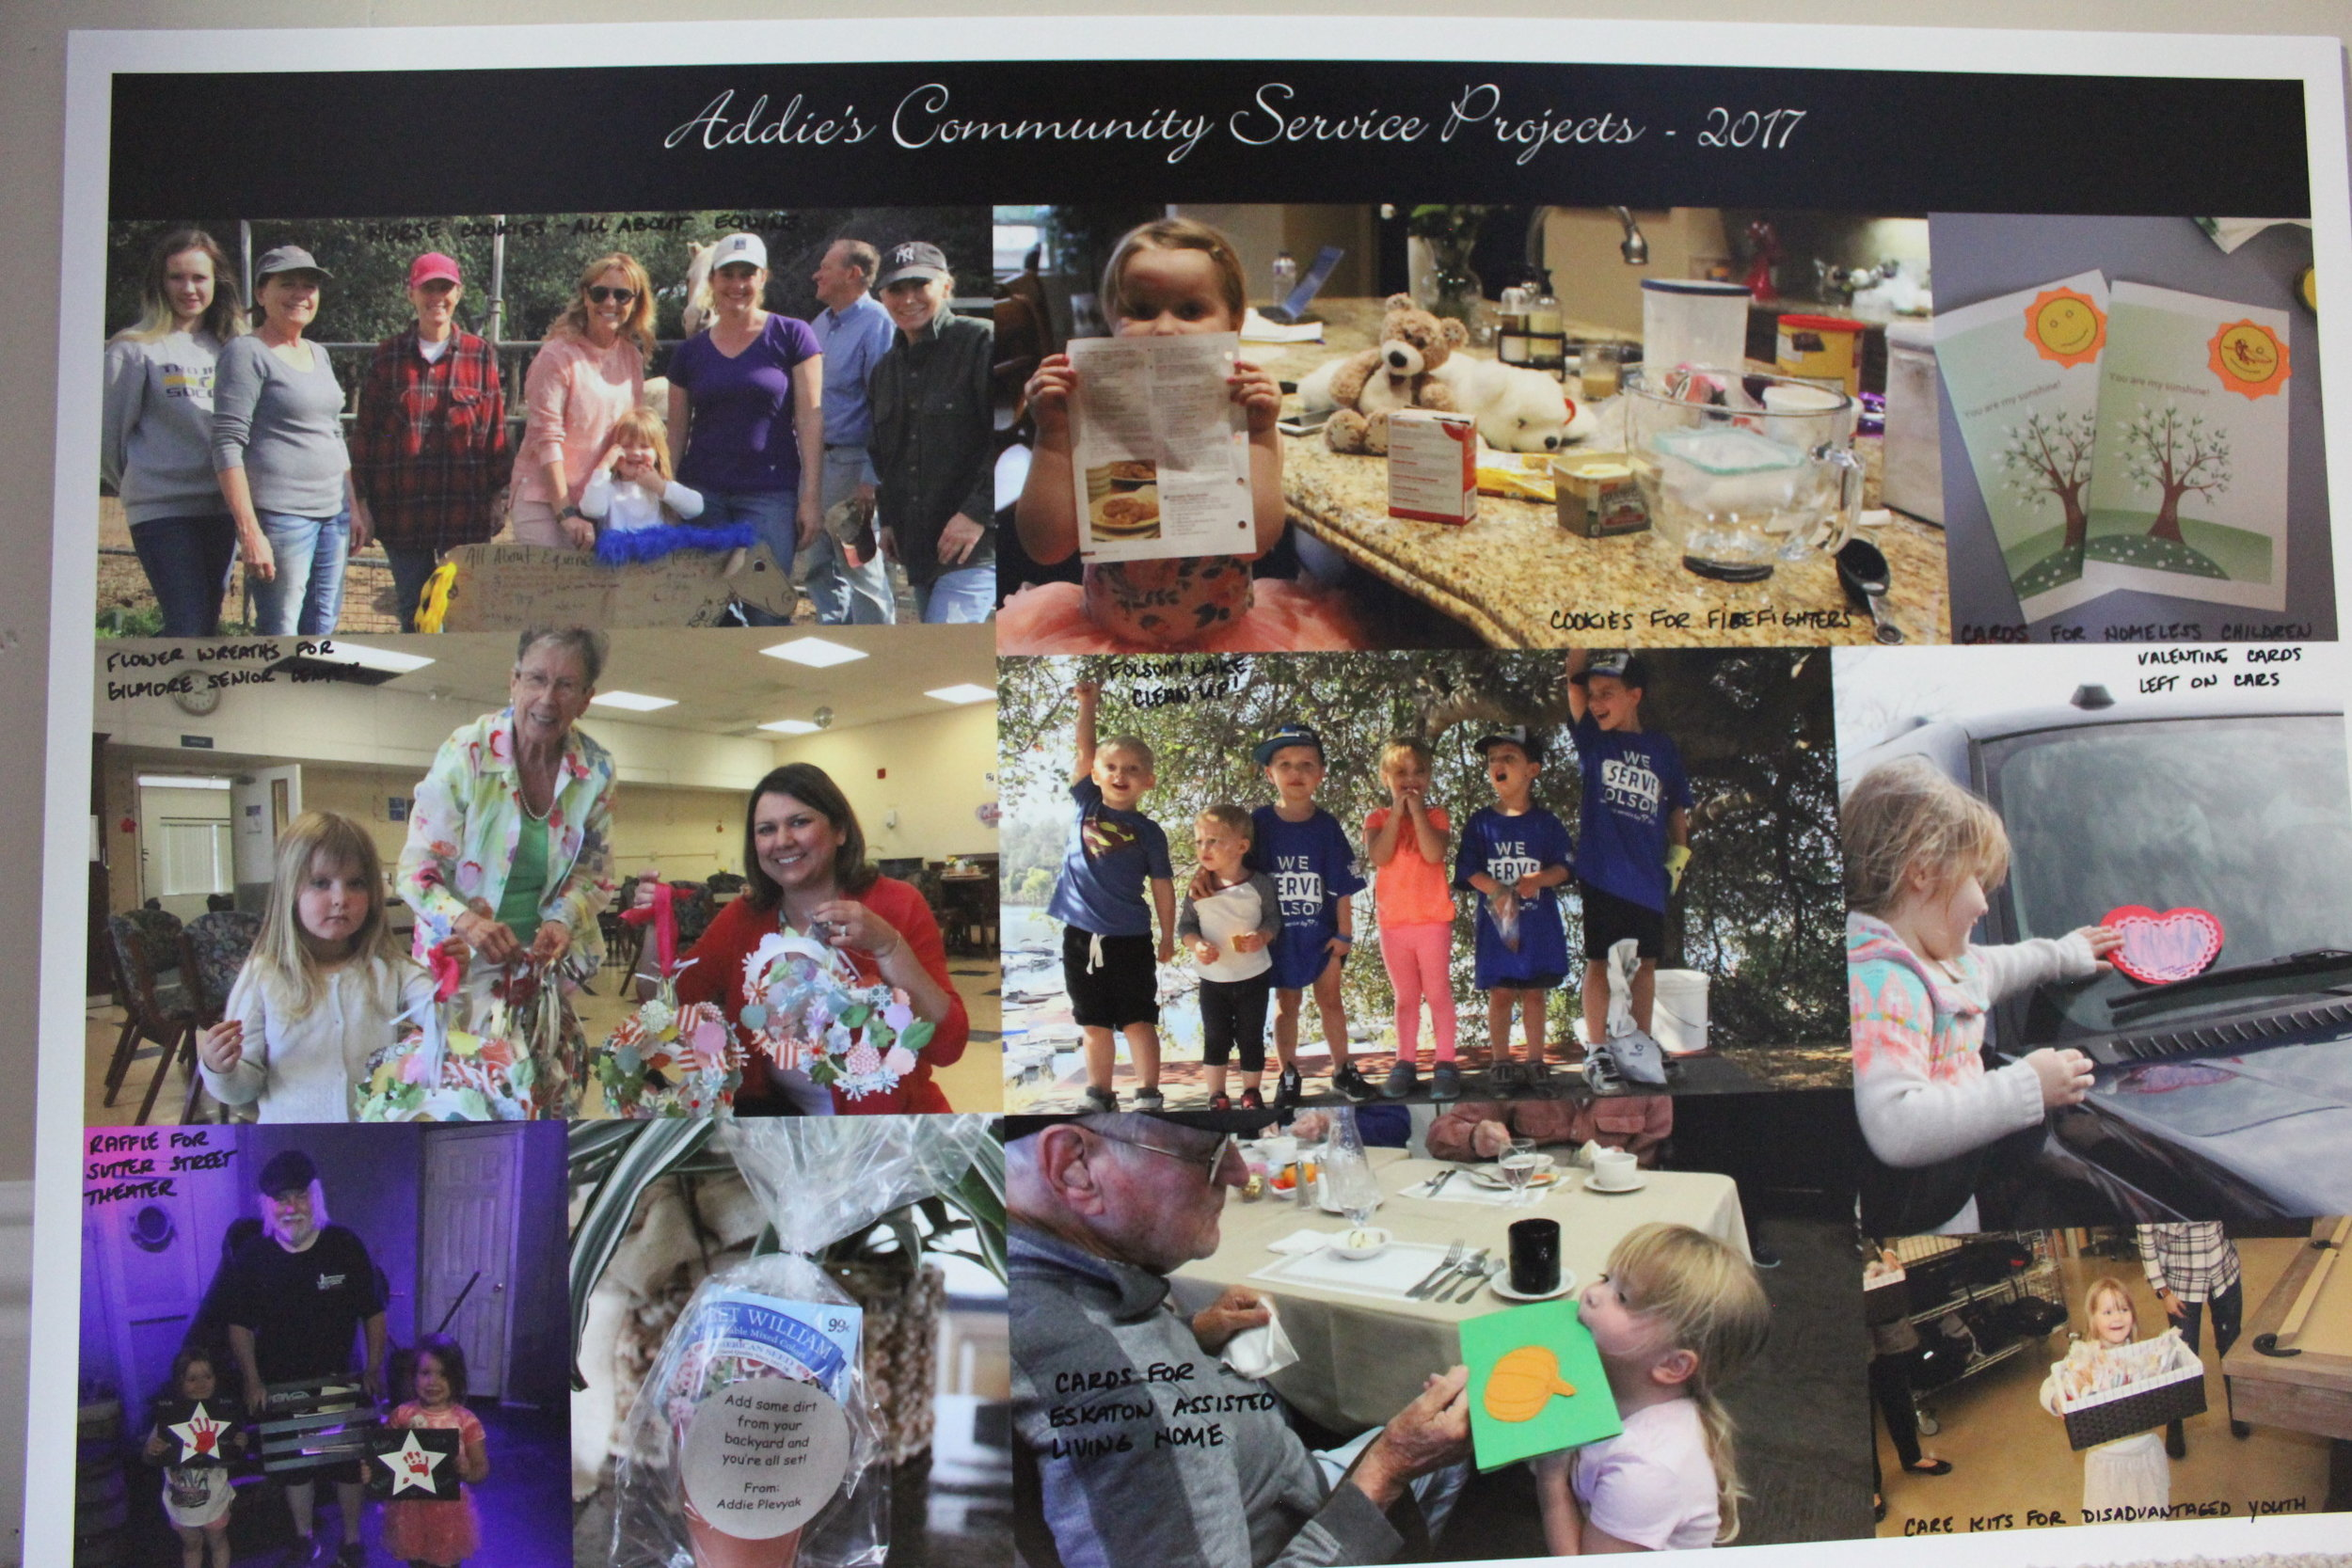 Pictures from some of Addie's community service projects that she completed in 2017